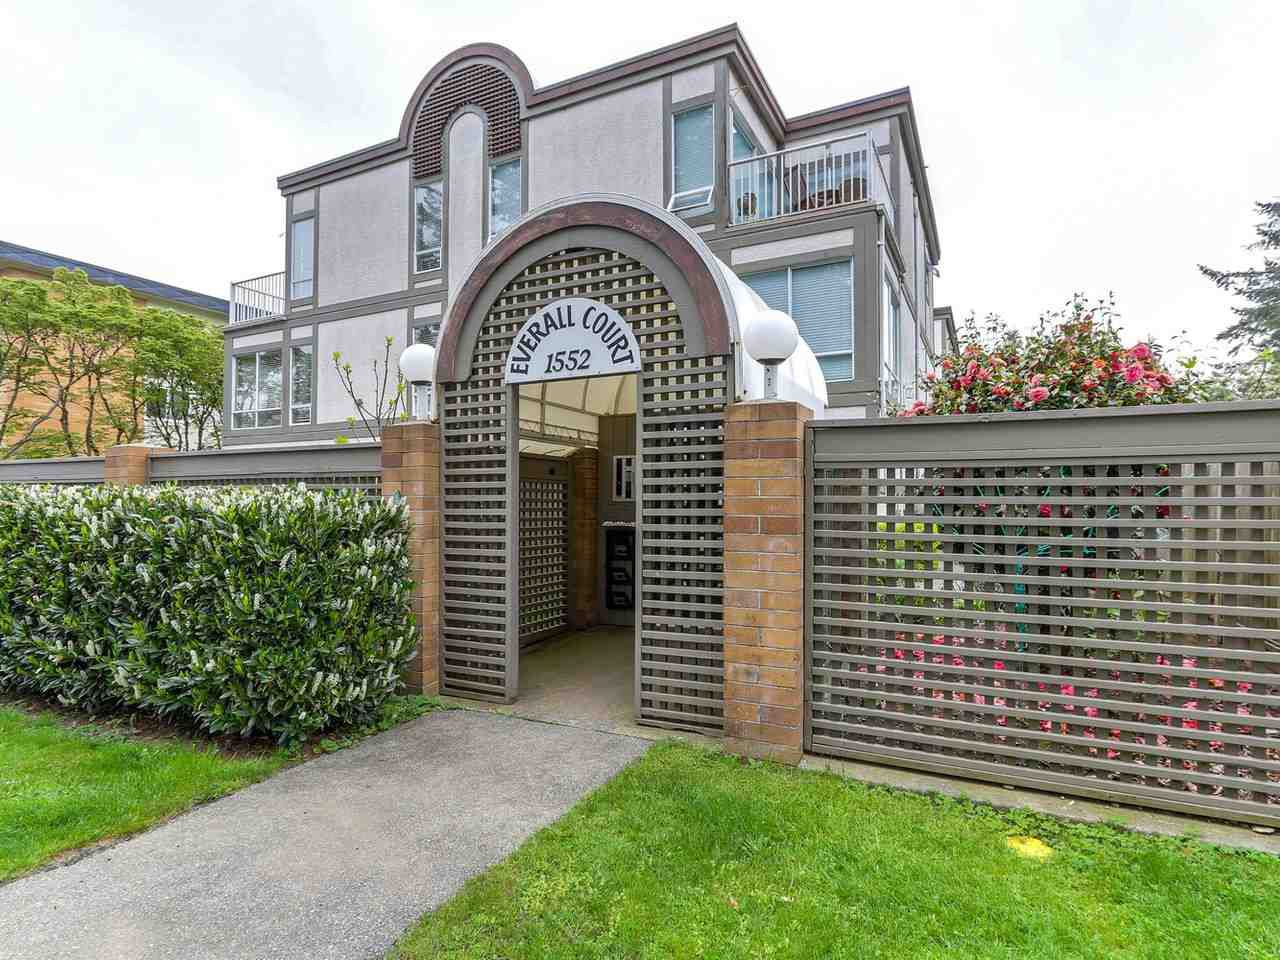 "Main Photo: 3 1552 EVERALL Street: White Rock Townhouse for sale in ""EVERALL COURT"" (South Surrey White Rock)  : MLS®# R2265782"